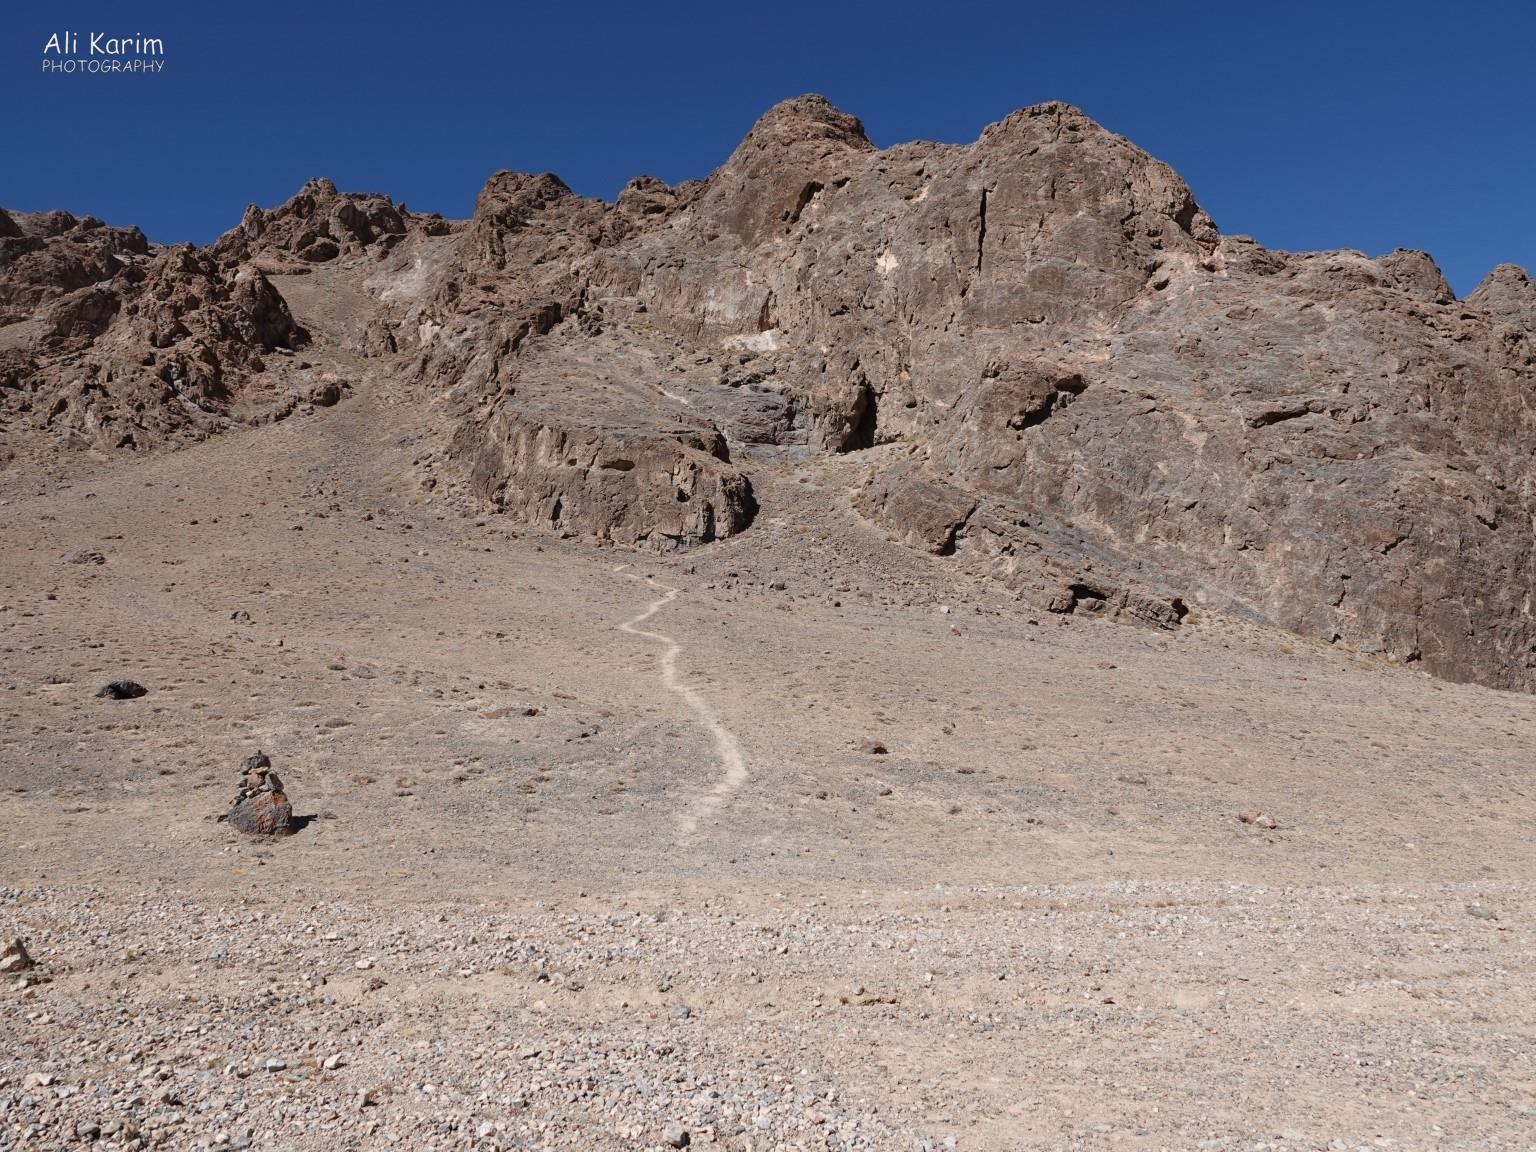 More Murghab & Alichur, Tajikistan, Short hike up to the Shakhty cave to check out the petroglyphs